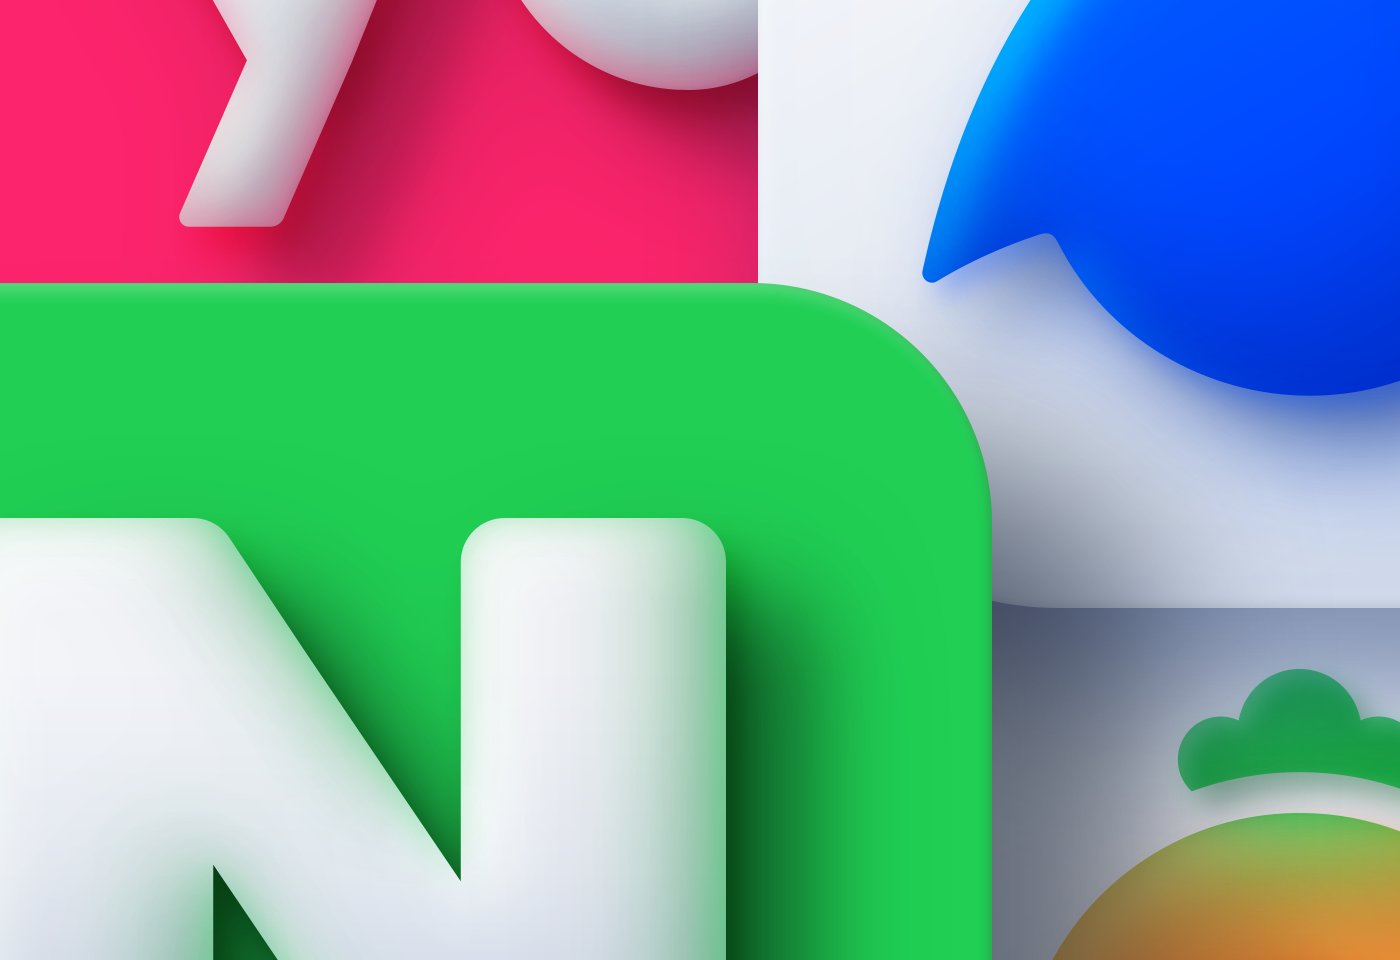 Neumorphism icons inspired by macOS Big Sur